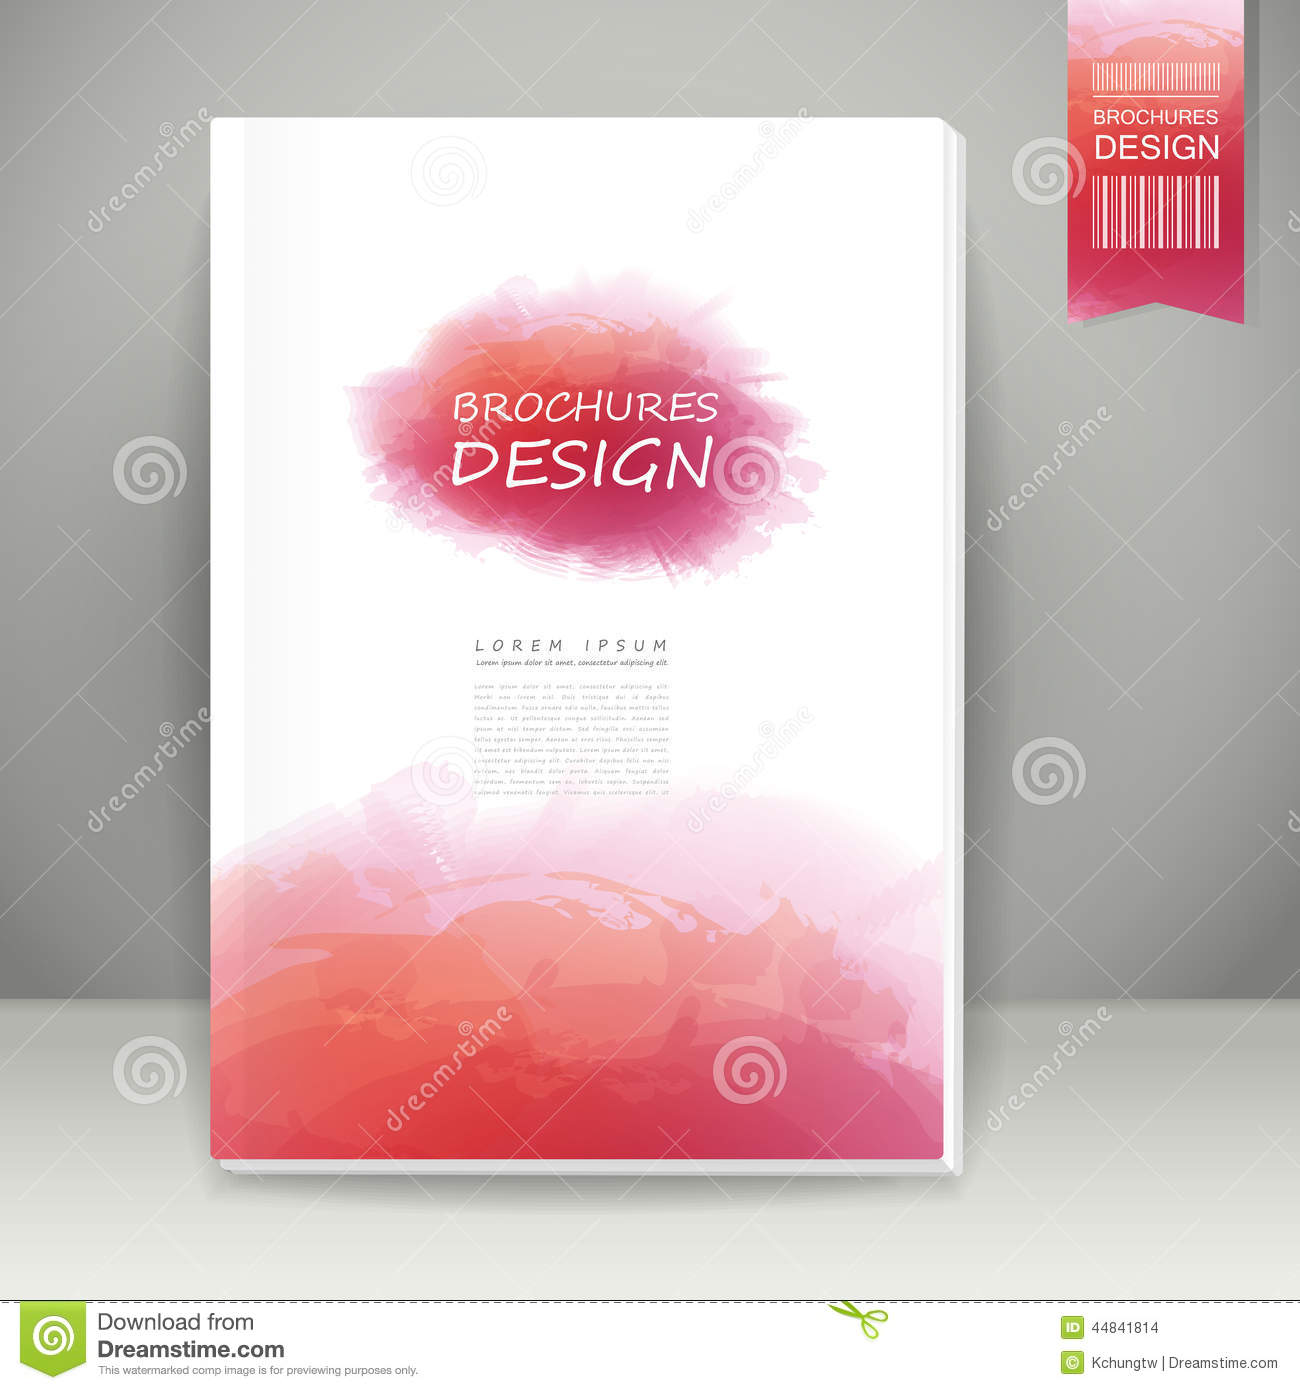 Watercolor style brochure design in pink